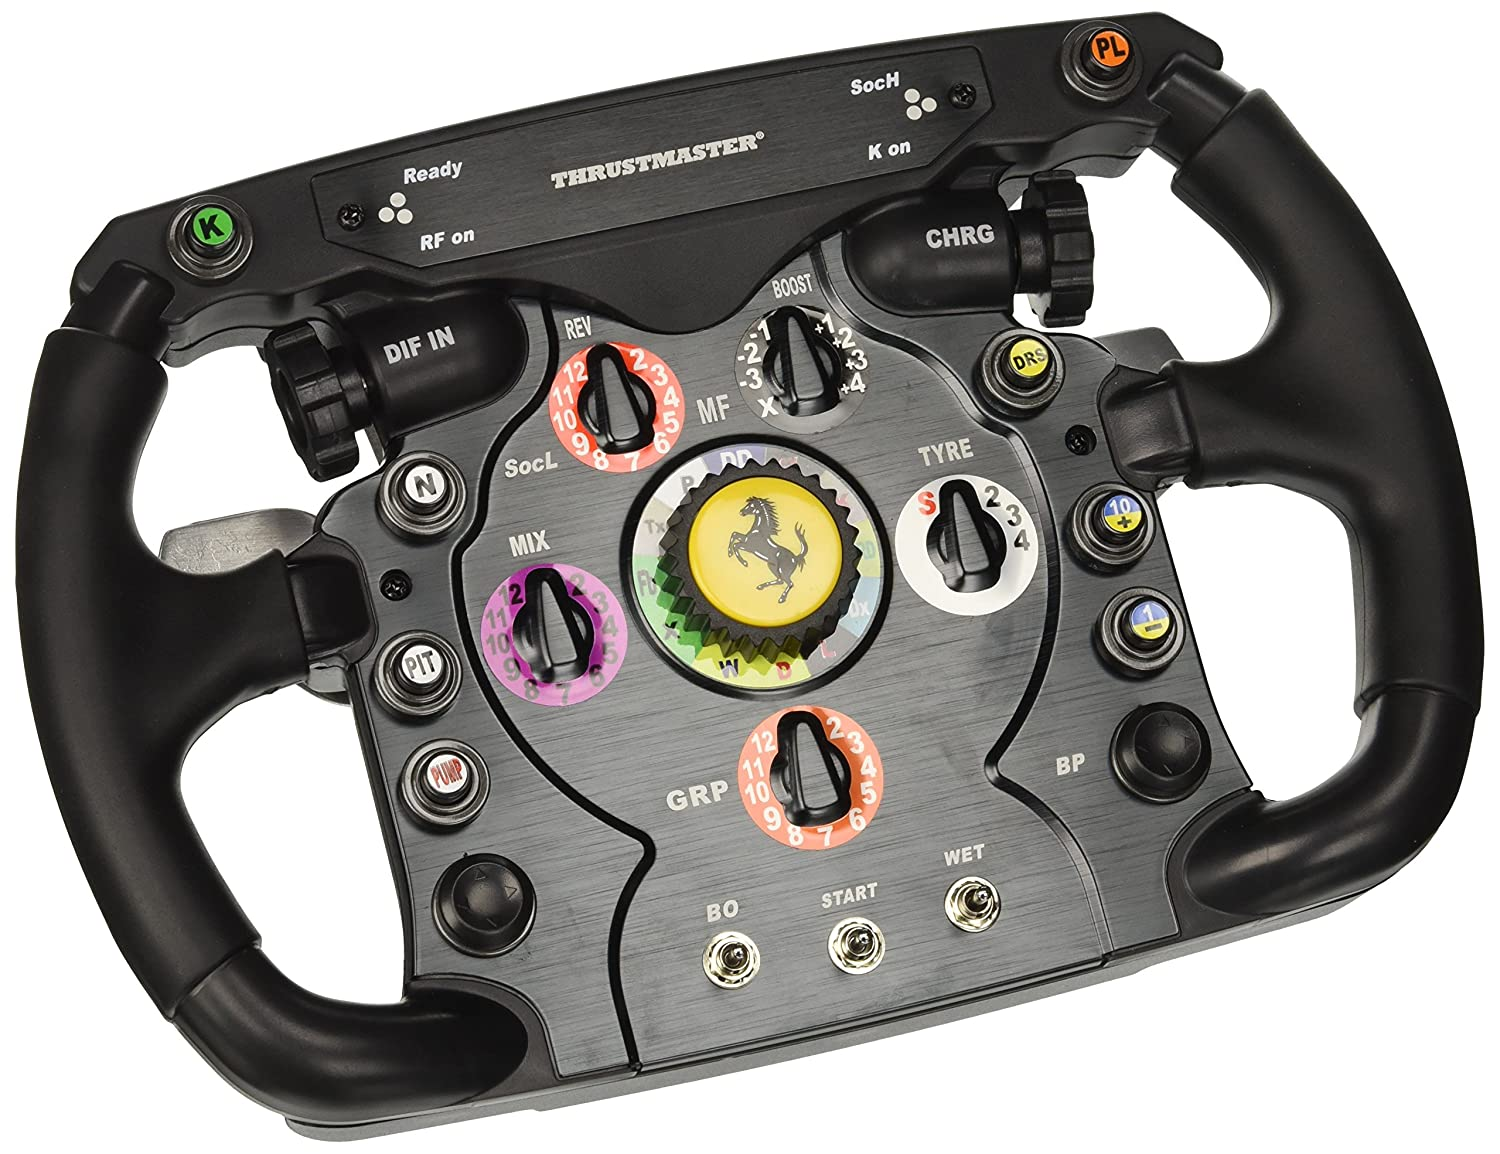 Thrustmaster F1 Wheel Add On Die Abnehmbare Ferrari 150th Italia Rennlenker Replik Fur Ps4 Xbox Pc Amazon De Games